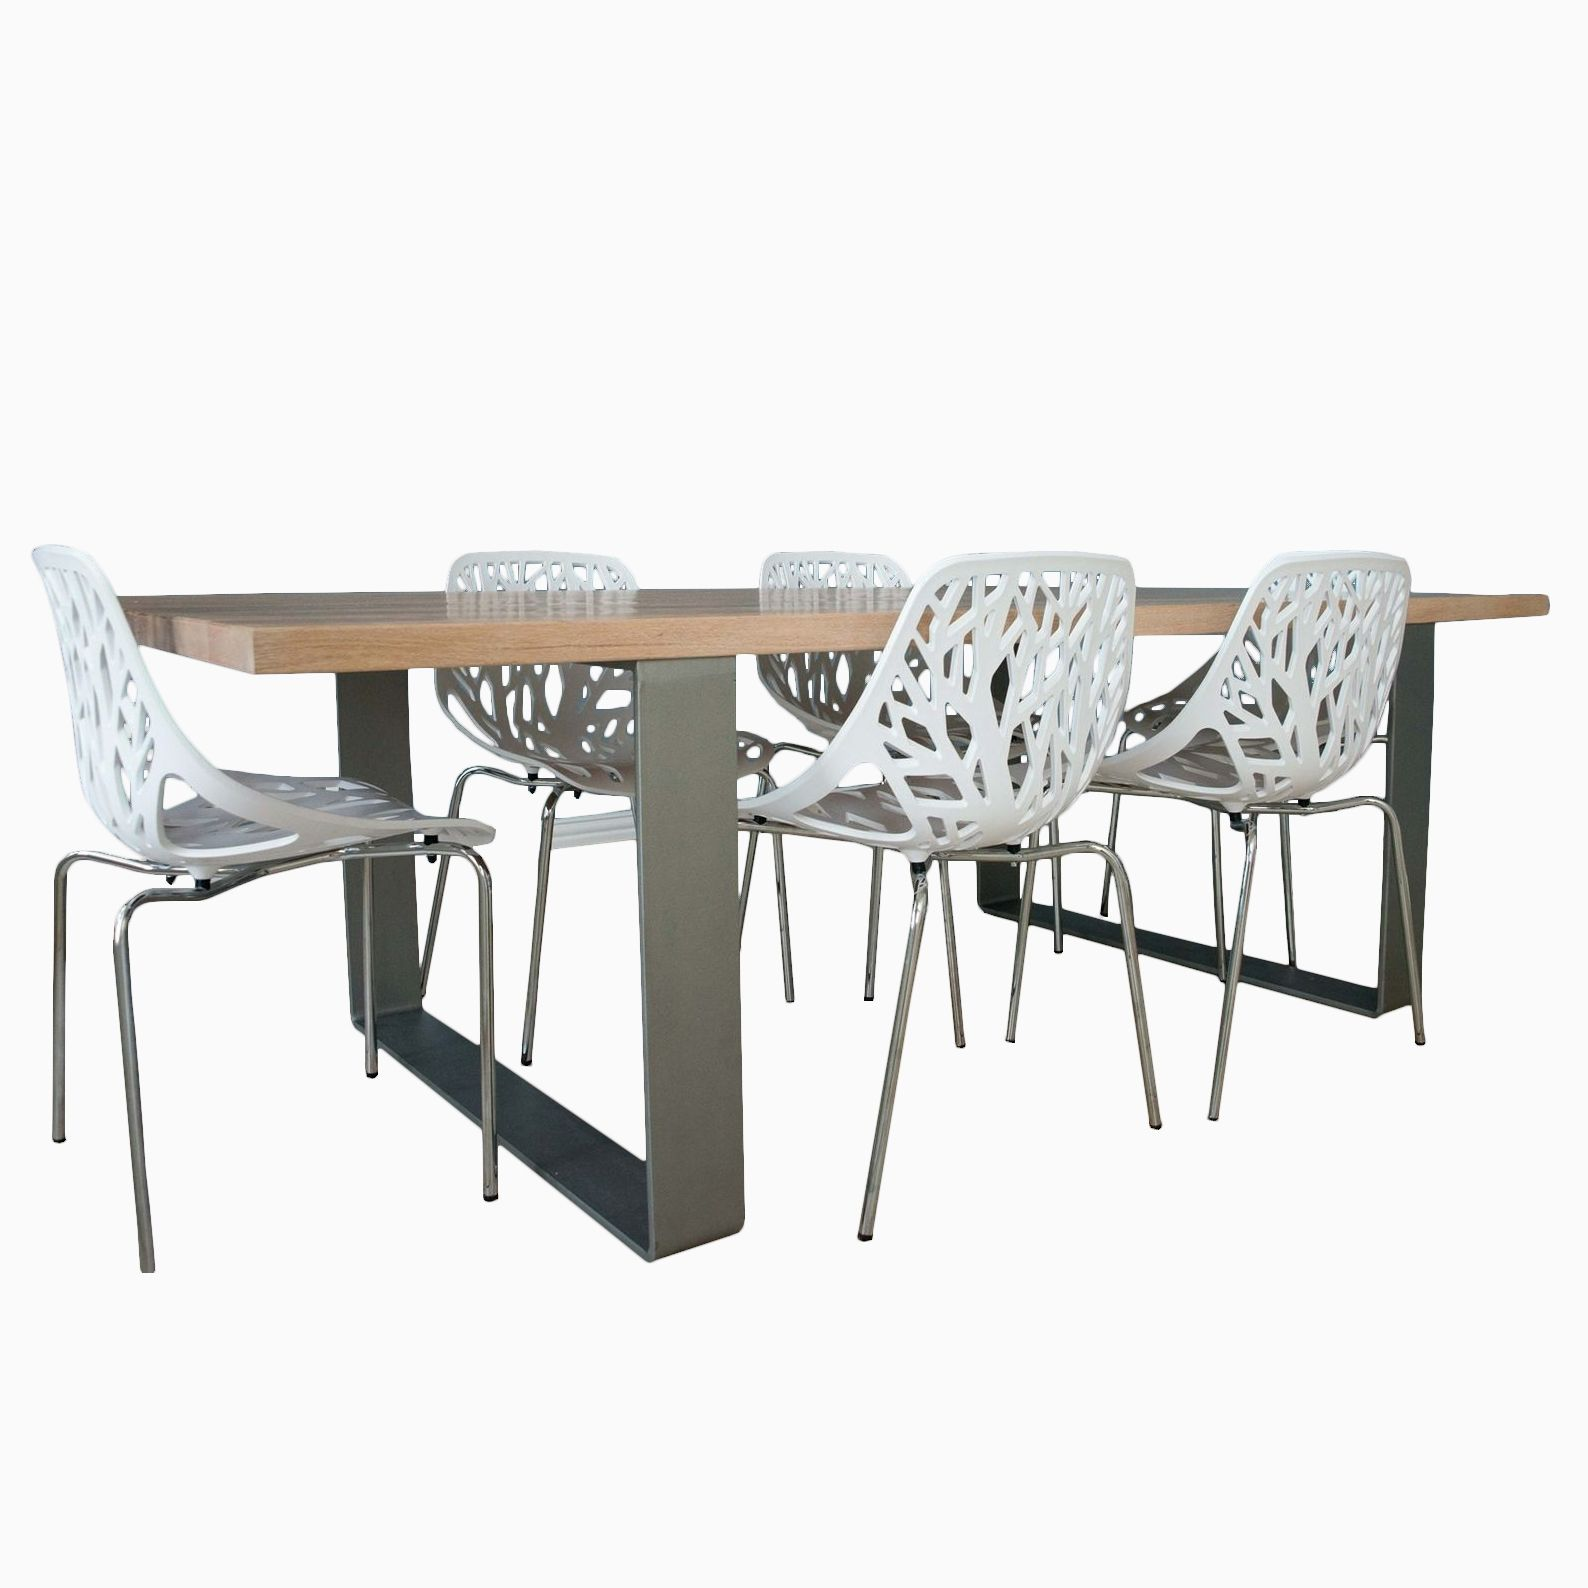 Custom Built Dining Room Tables: Buy Handmade Oak Dining Room Table With Iron Legs, Made To